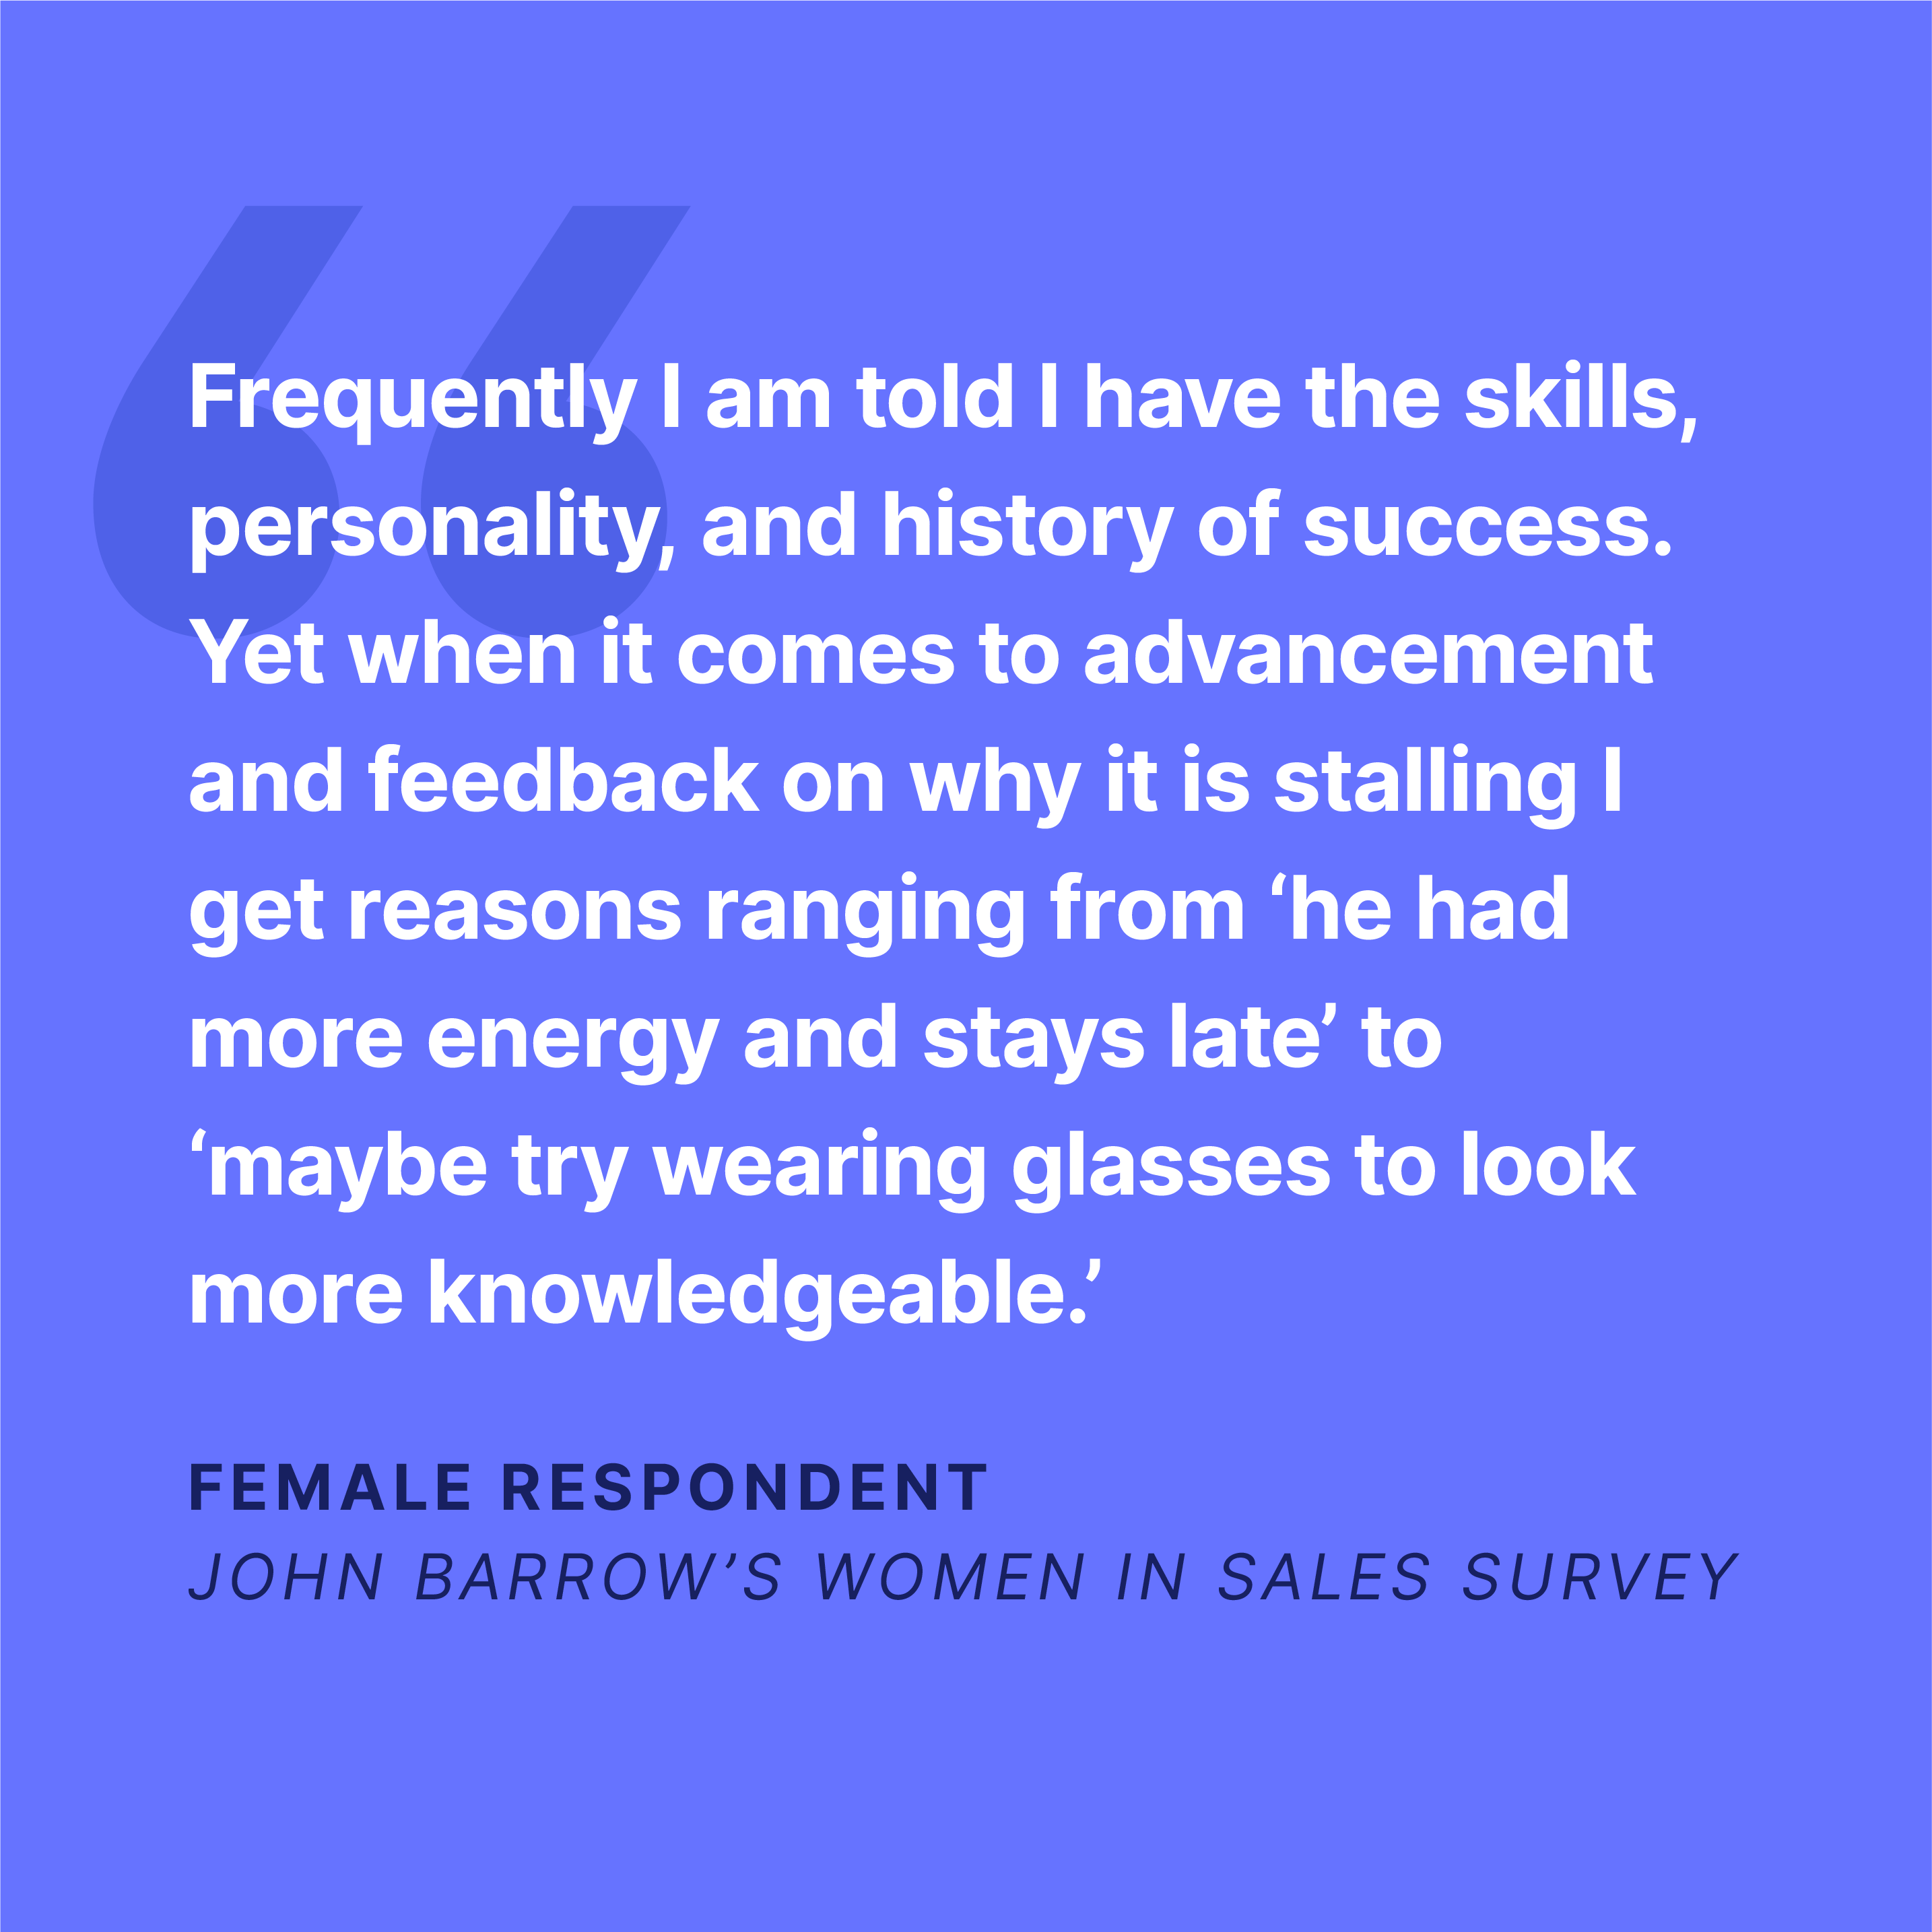 I am told I have the skills, personality and history of success says a female survey respondent, but advancement stalls.